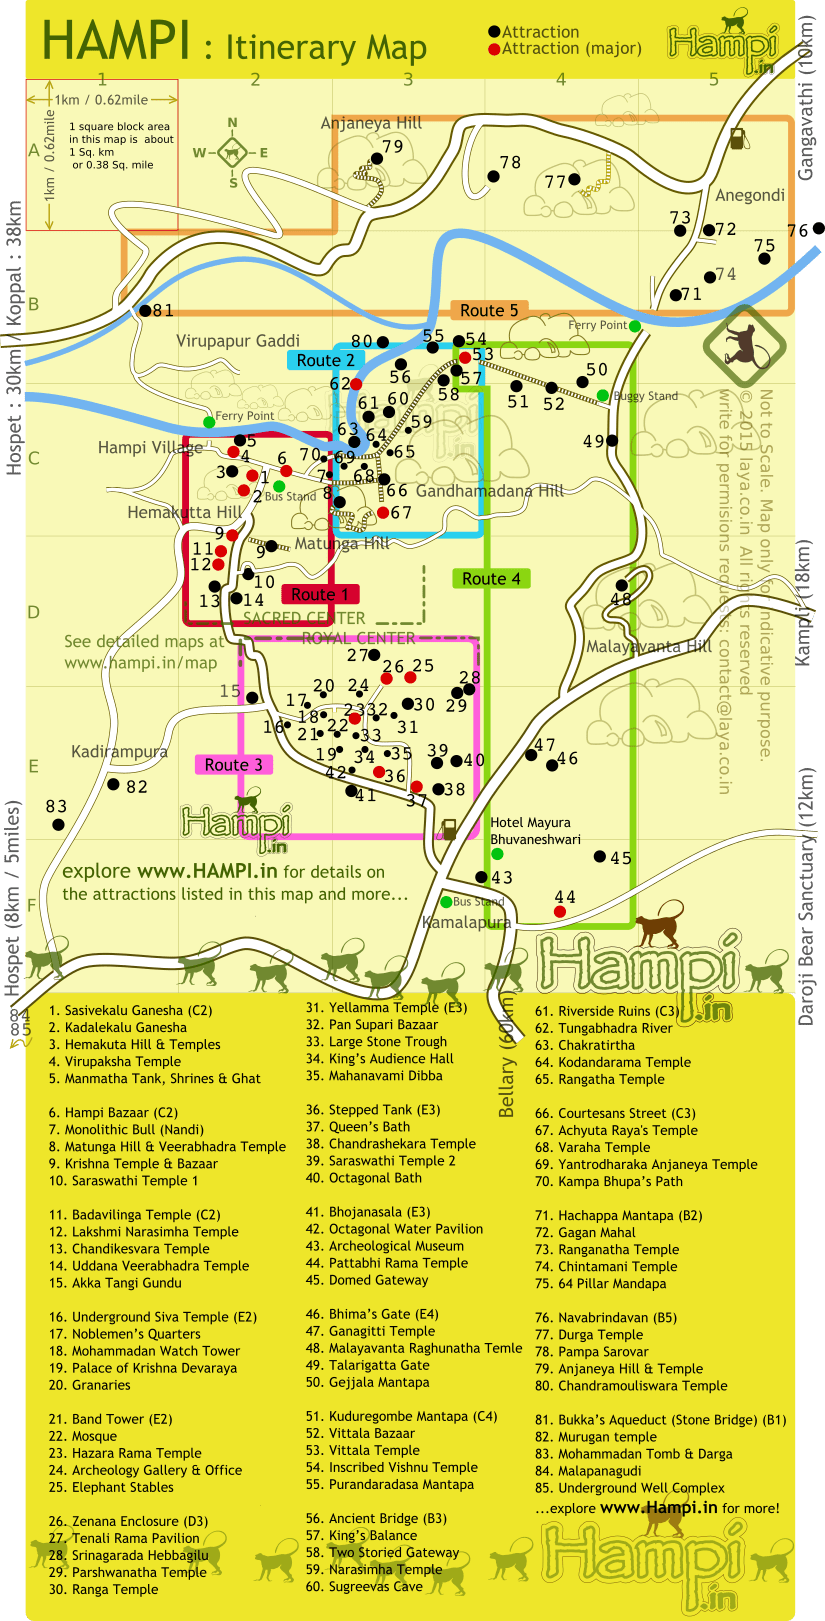 hampi-itinerary-map